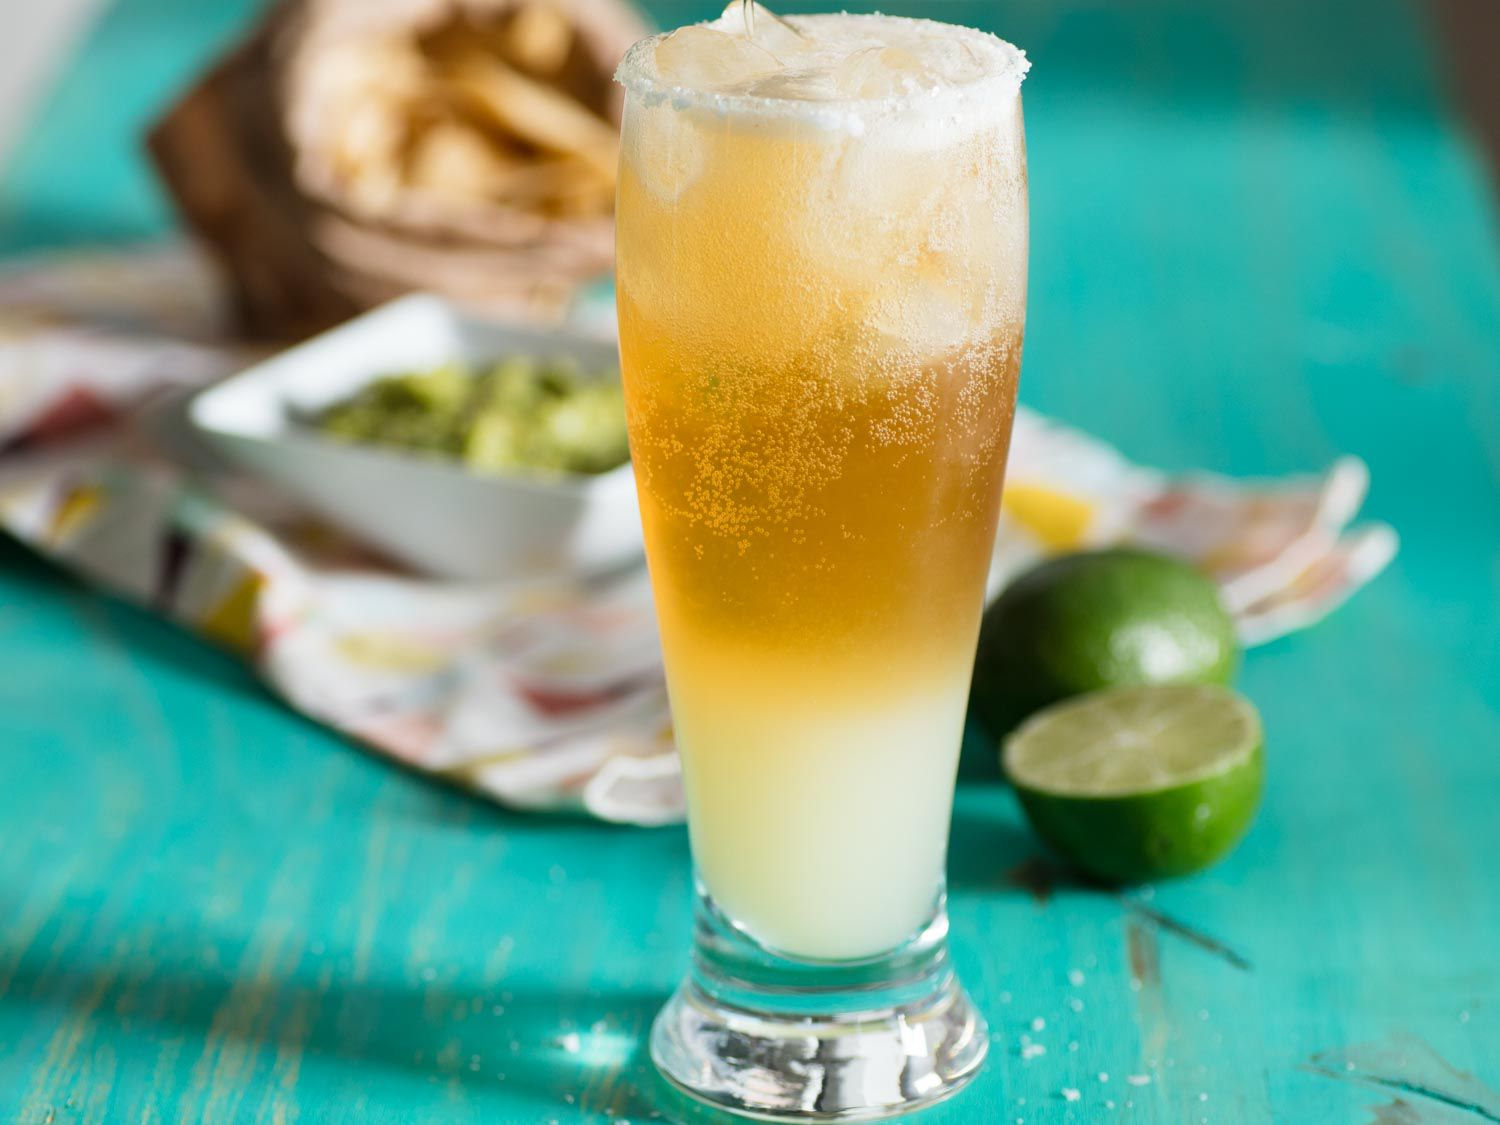 A chelada (lime juice, beer, and salt over ice) in a tall glass